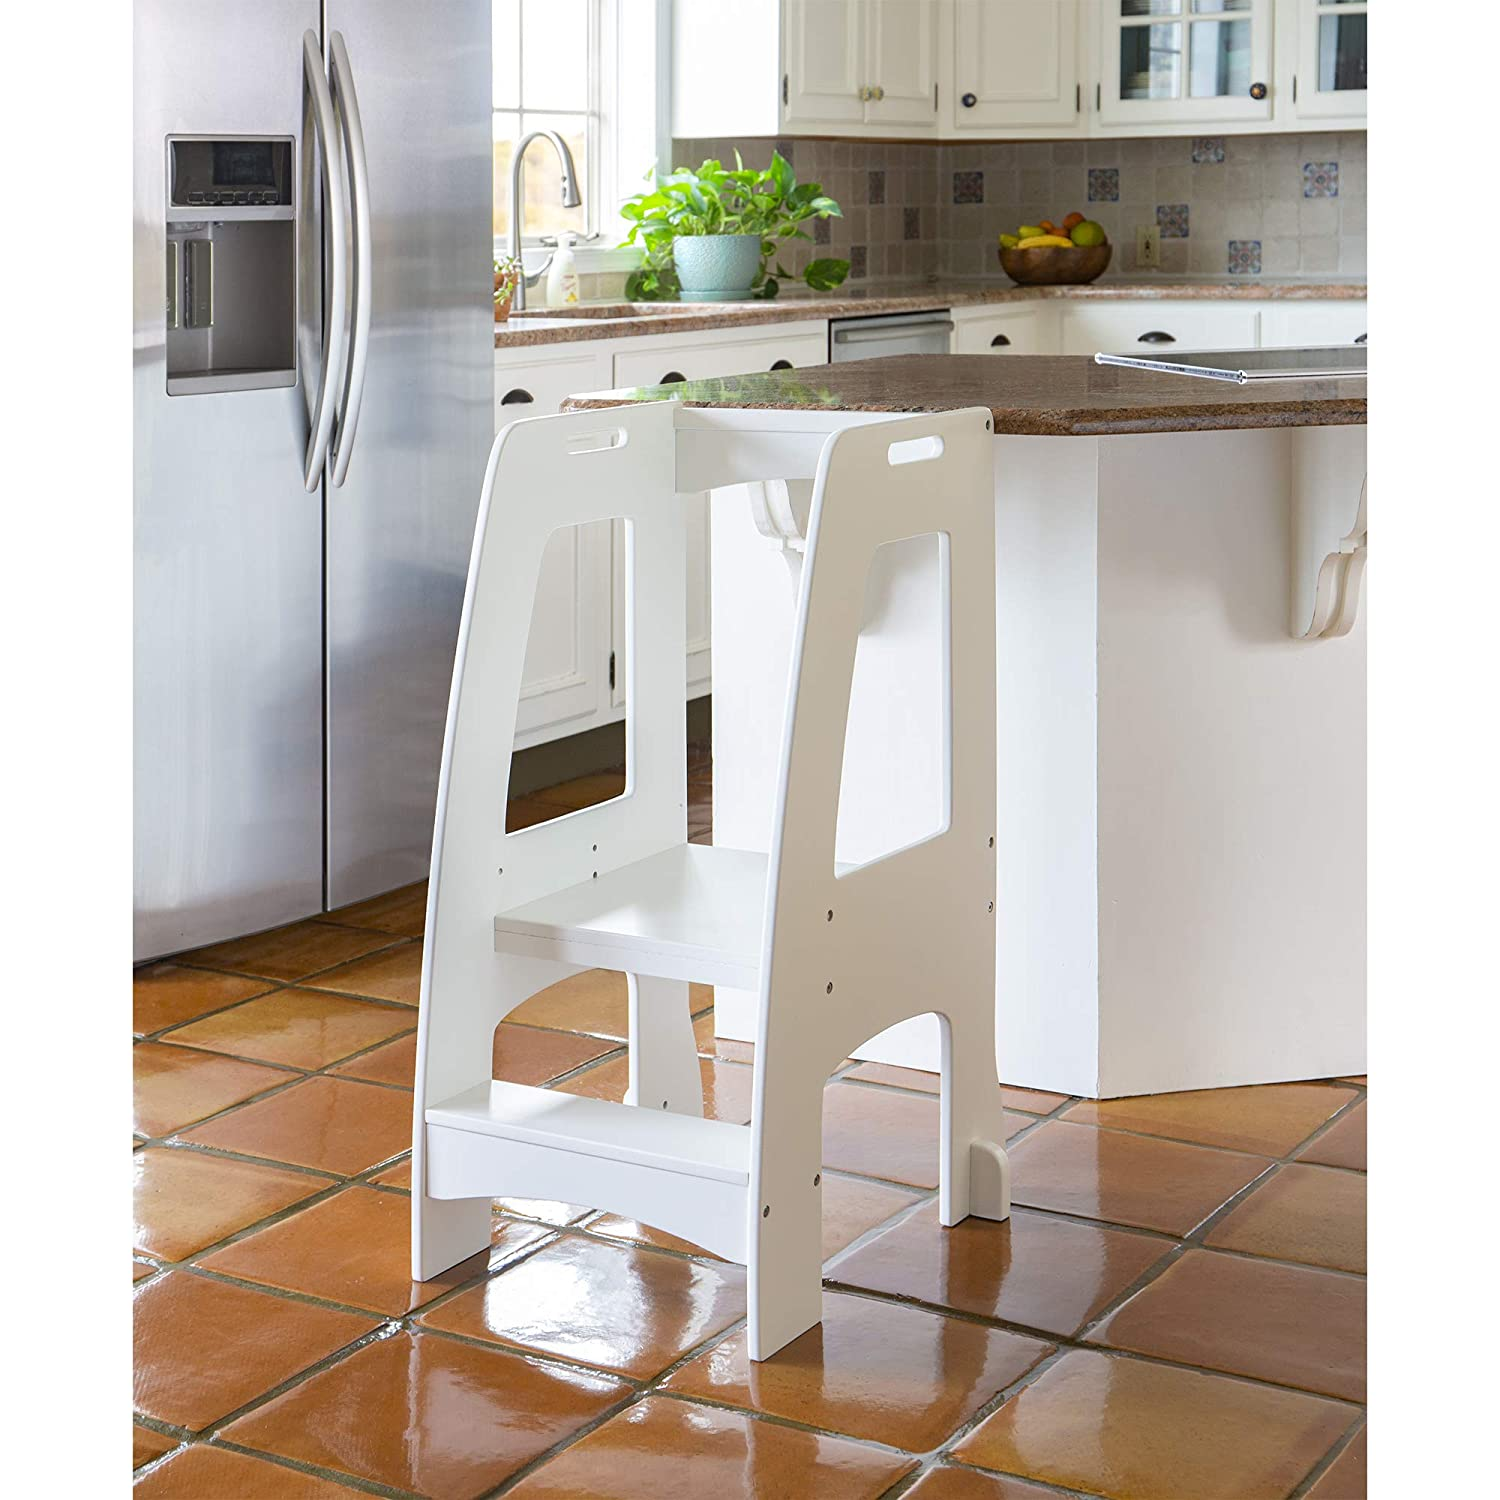 Admirable Guidecraft Kitchen Helper Tower Step Up White Kids Wooden Adjustable Height Step Stool With Safety Rails For Little Children Toddler Learning Camellatalisay Diy Chair Ideas Camellatalisaycom